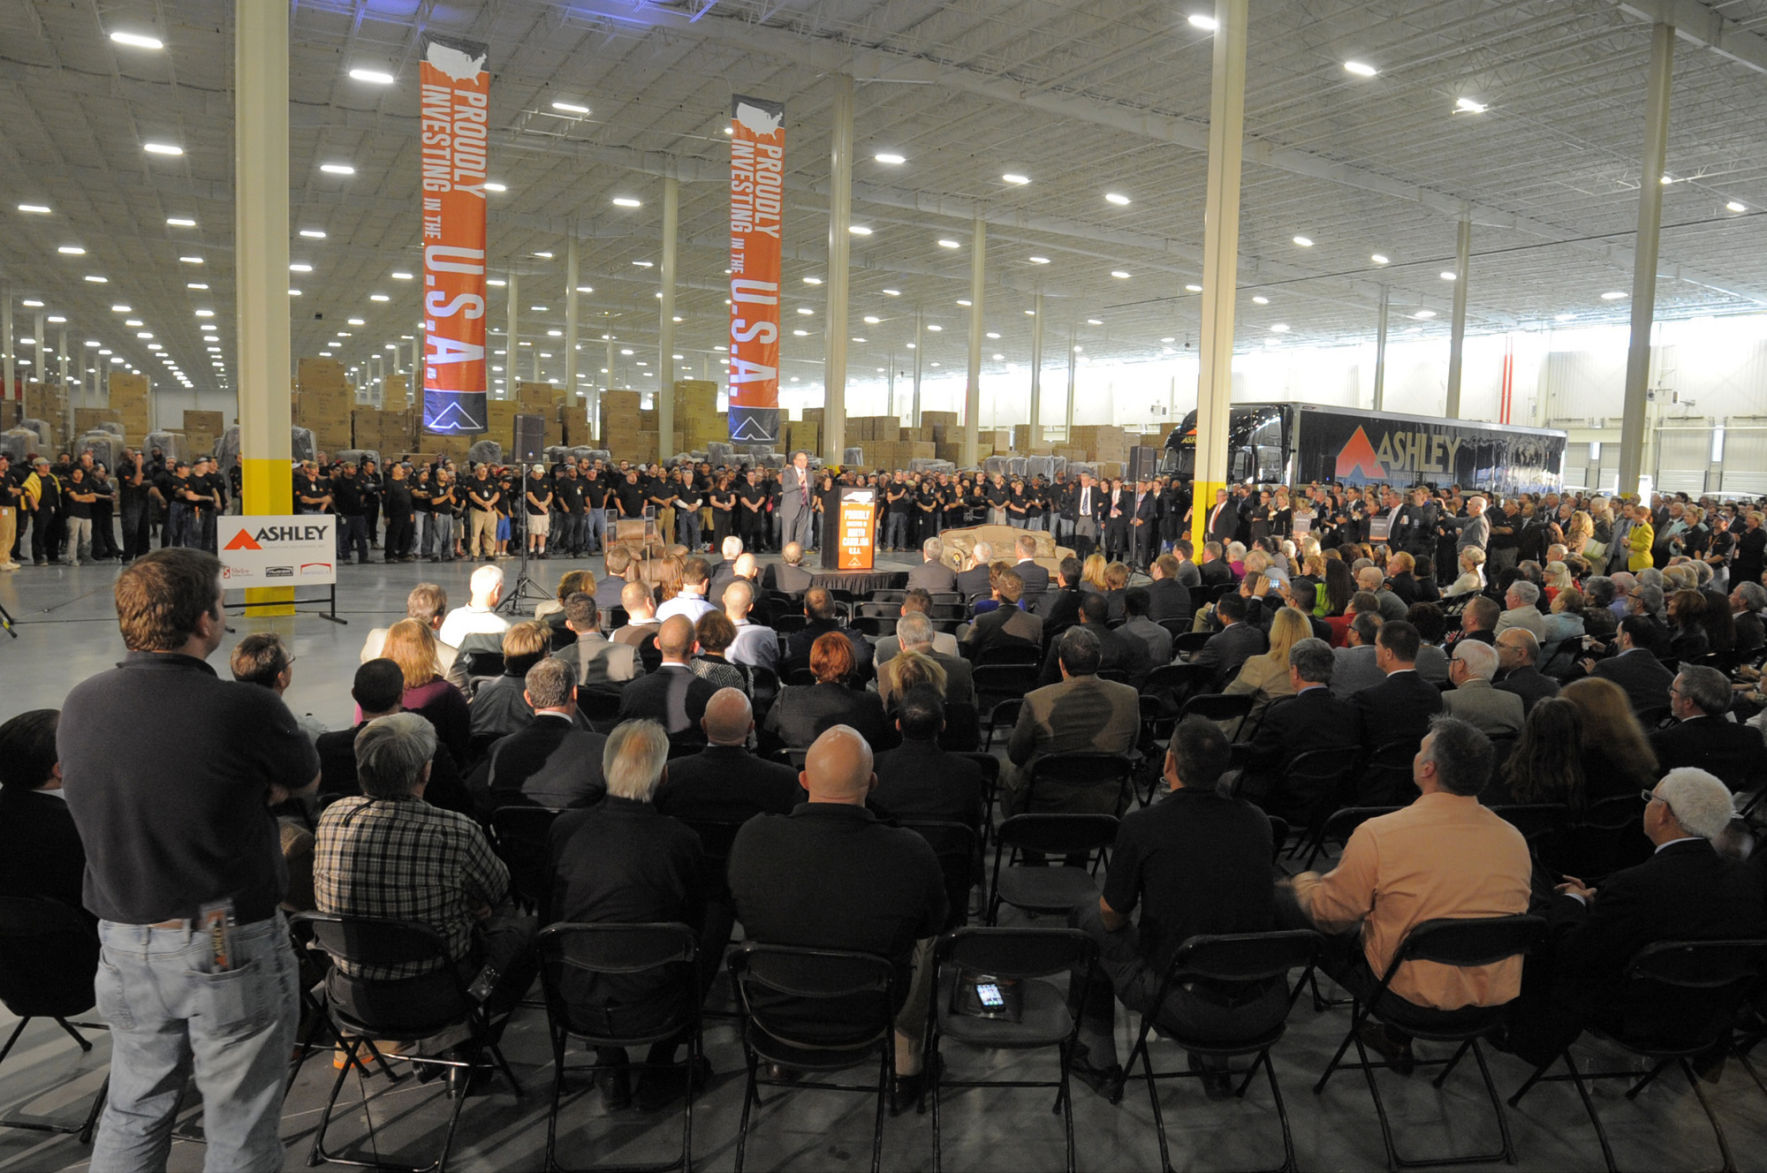 Grand Opening Of Ashley Manufacturing Distribution Center Attracts Dignitaries Local News Journalnow Com